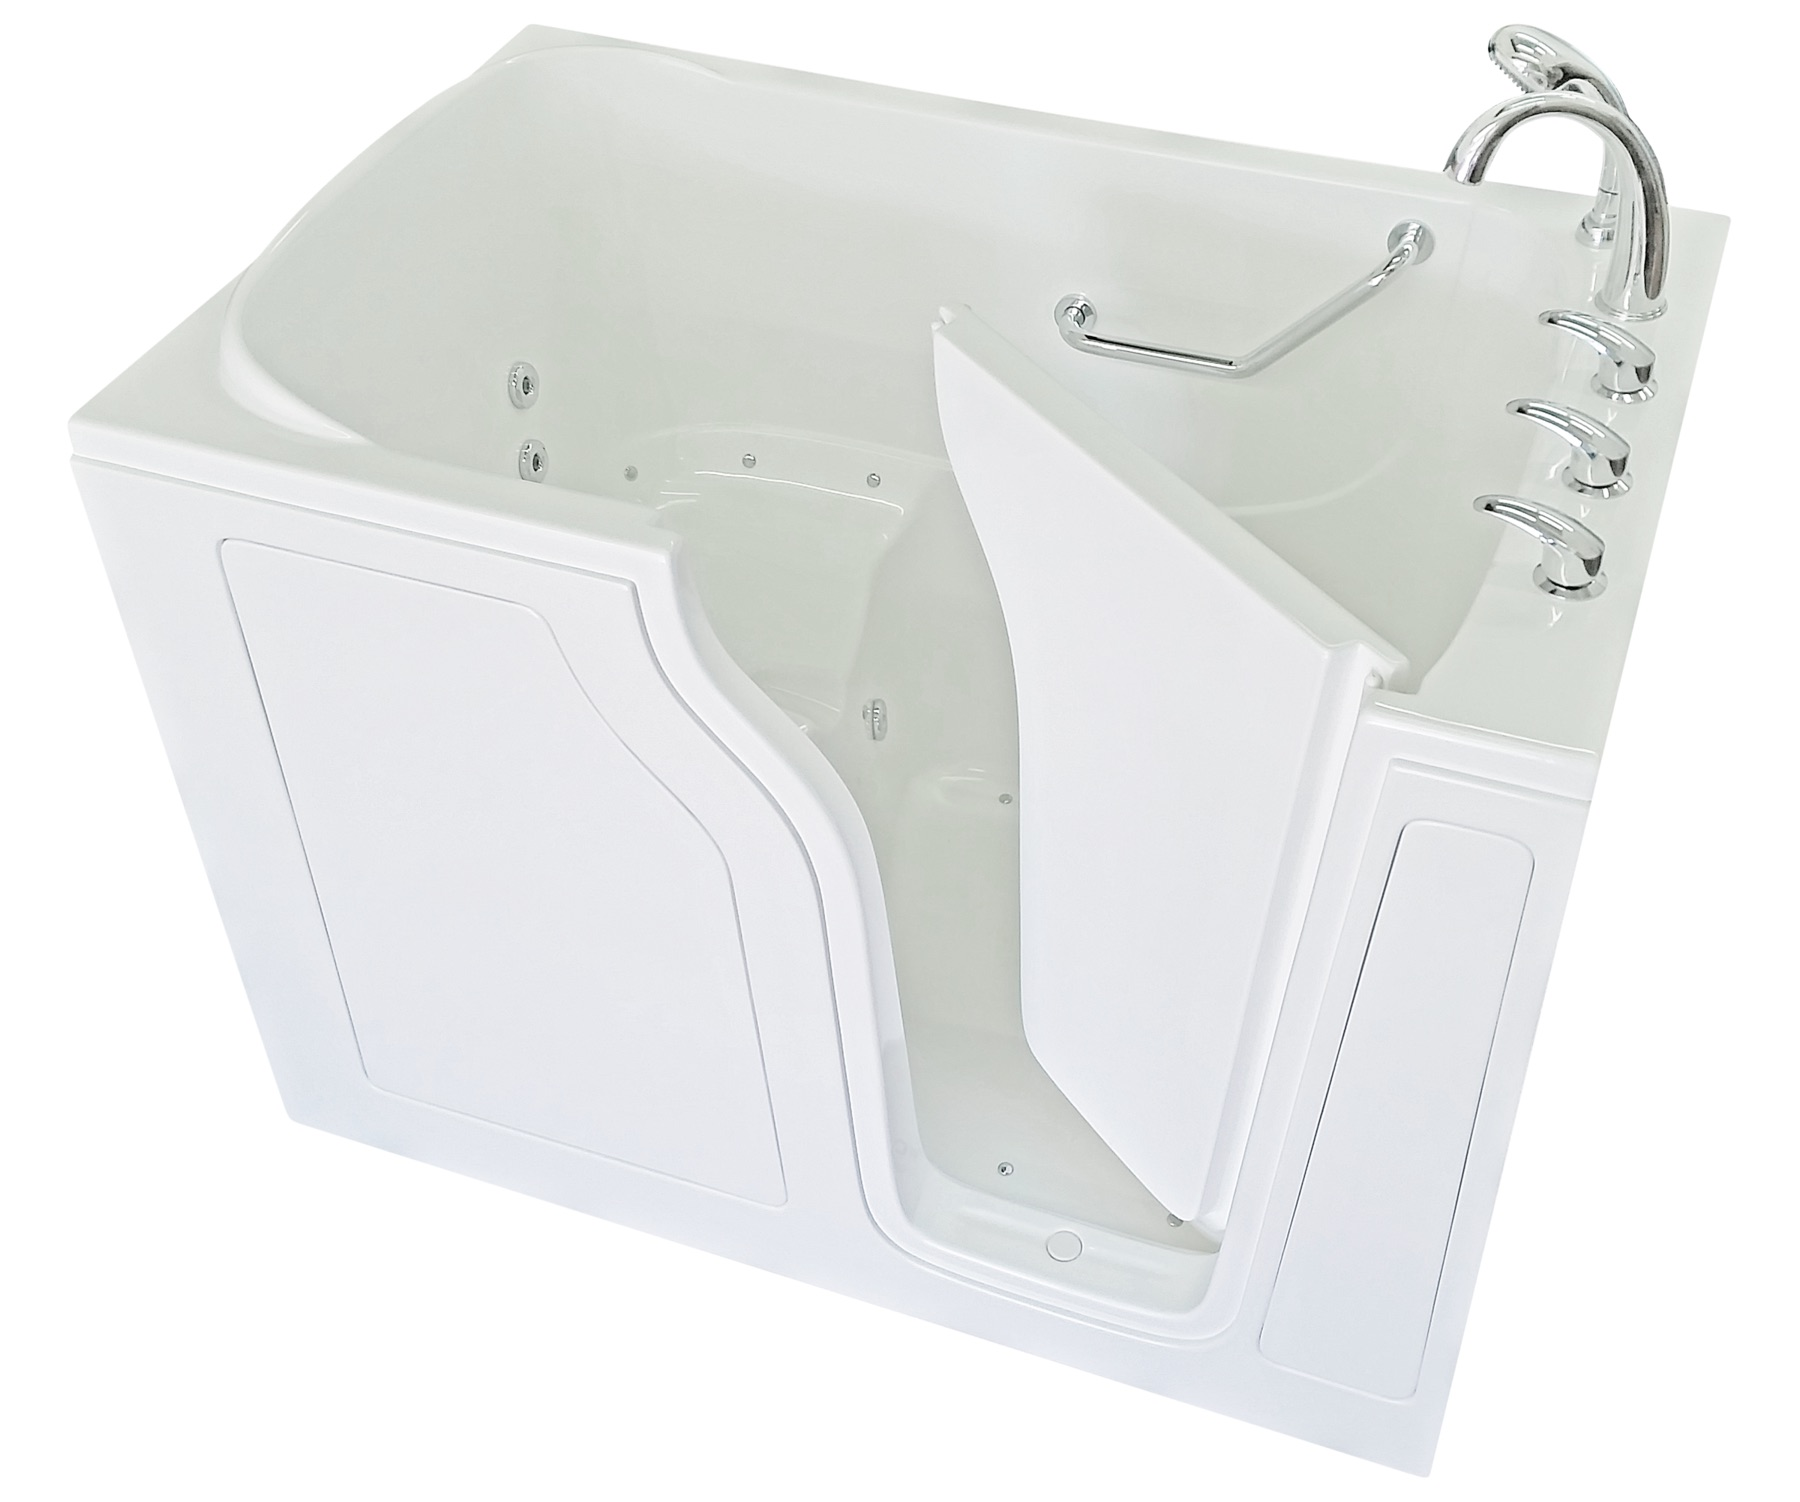 Why You Might Want to Consider Walk-in Tubs - Kindly Care